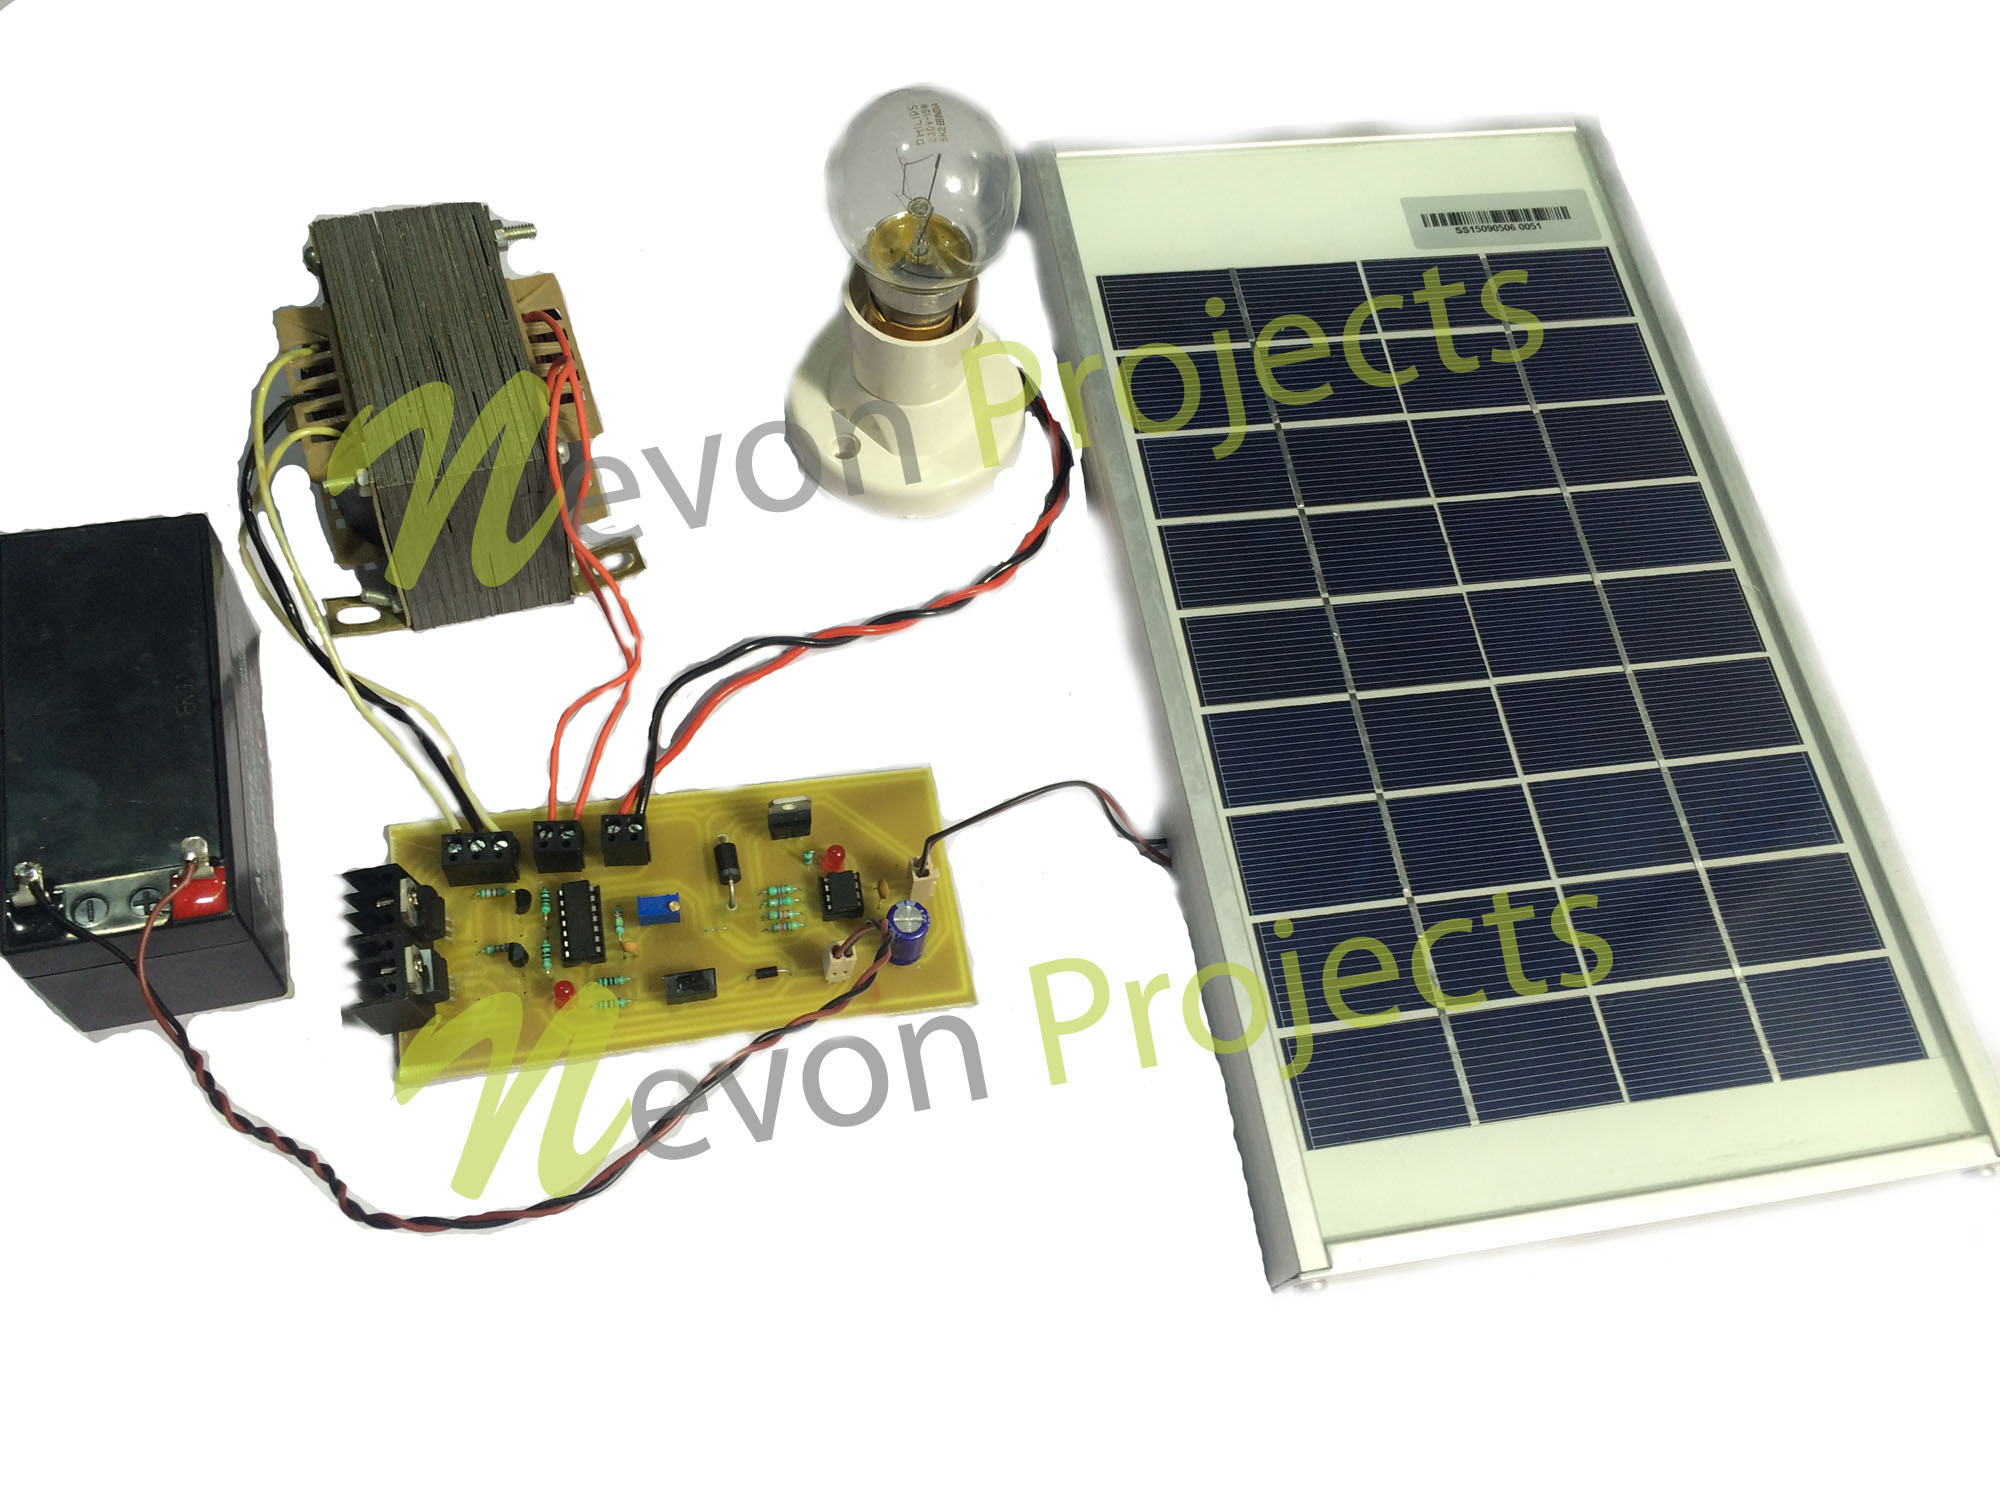 Solar Based Ups Project Nevonprojects Panel Wiring Diagram On 12 Volt Motion Light